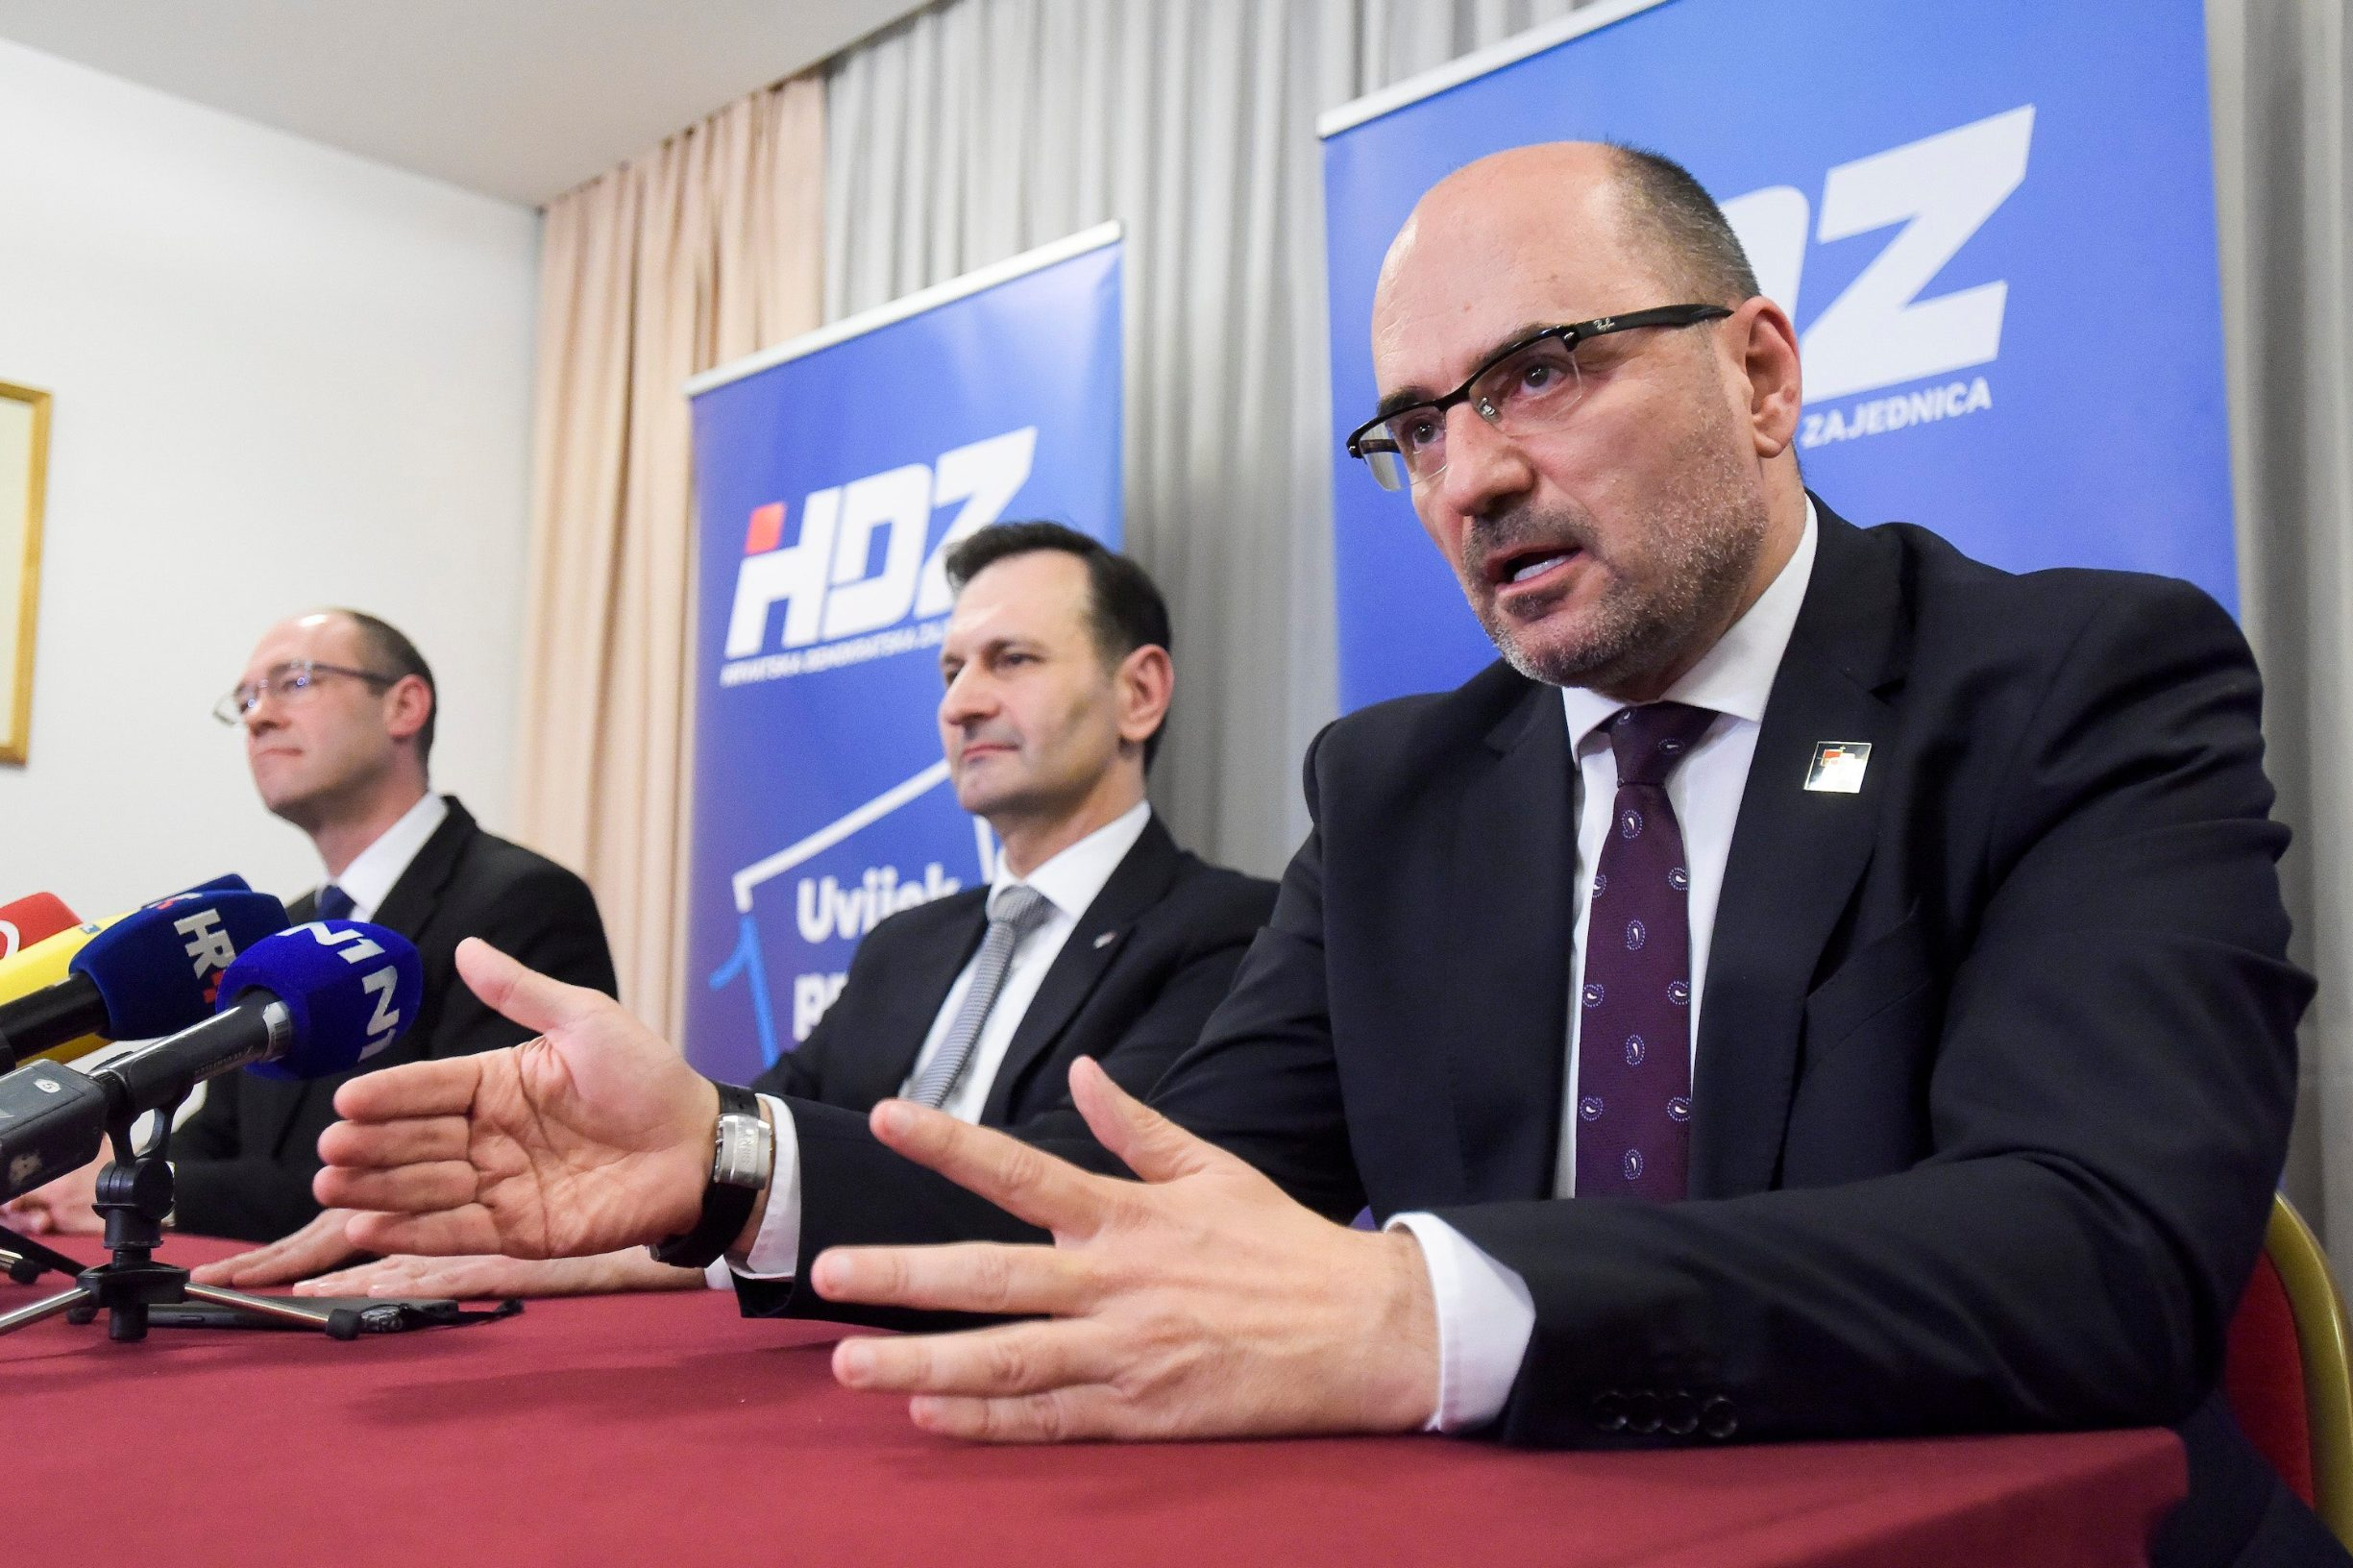 Members of the HDZ opposition; Davor Ivo Stier, Miro Kovač and Milian Brkić on a press conference after the official results have been announced